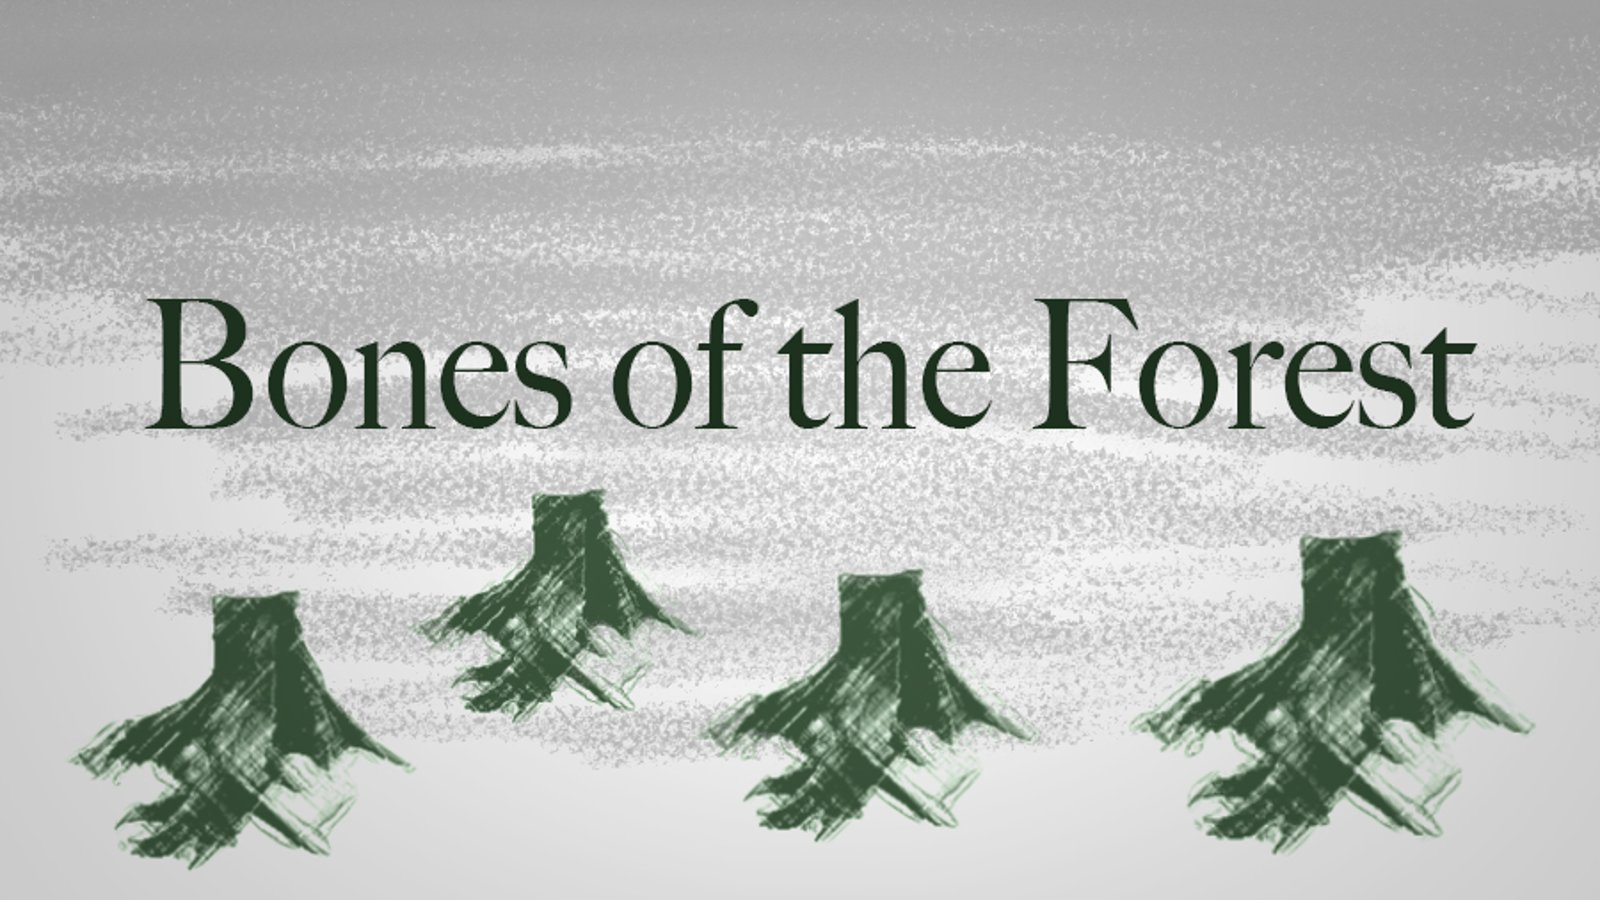 Bones of the Forest